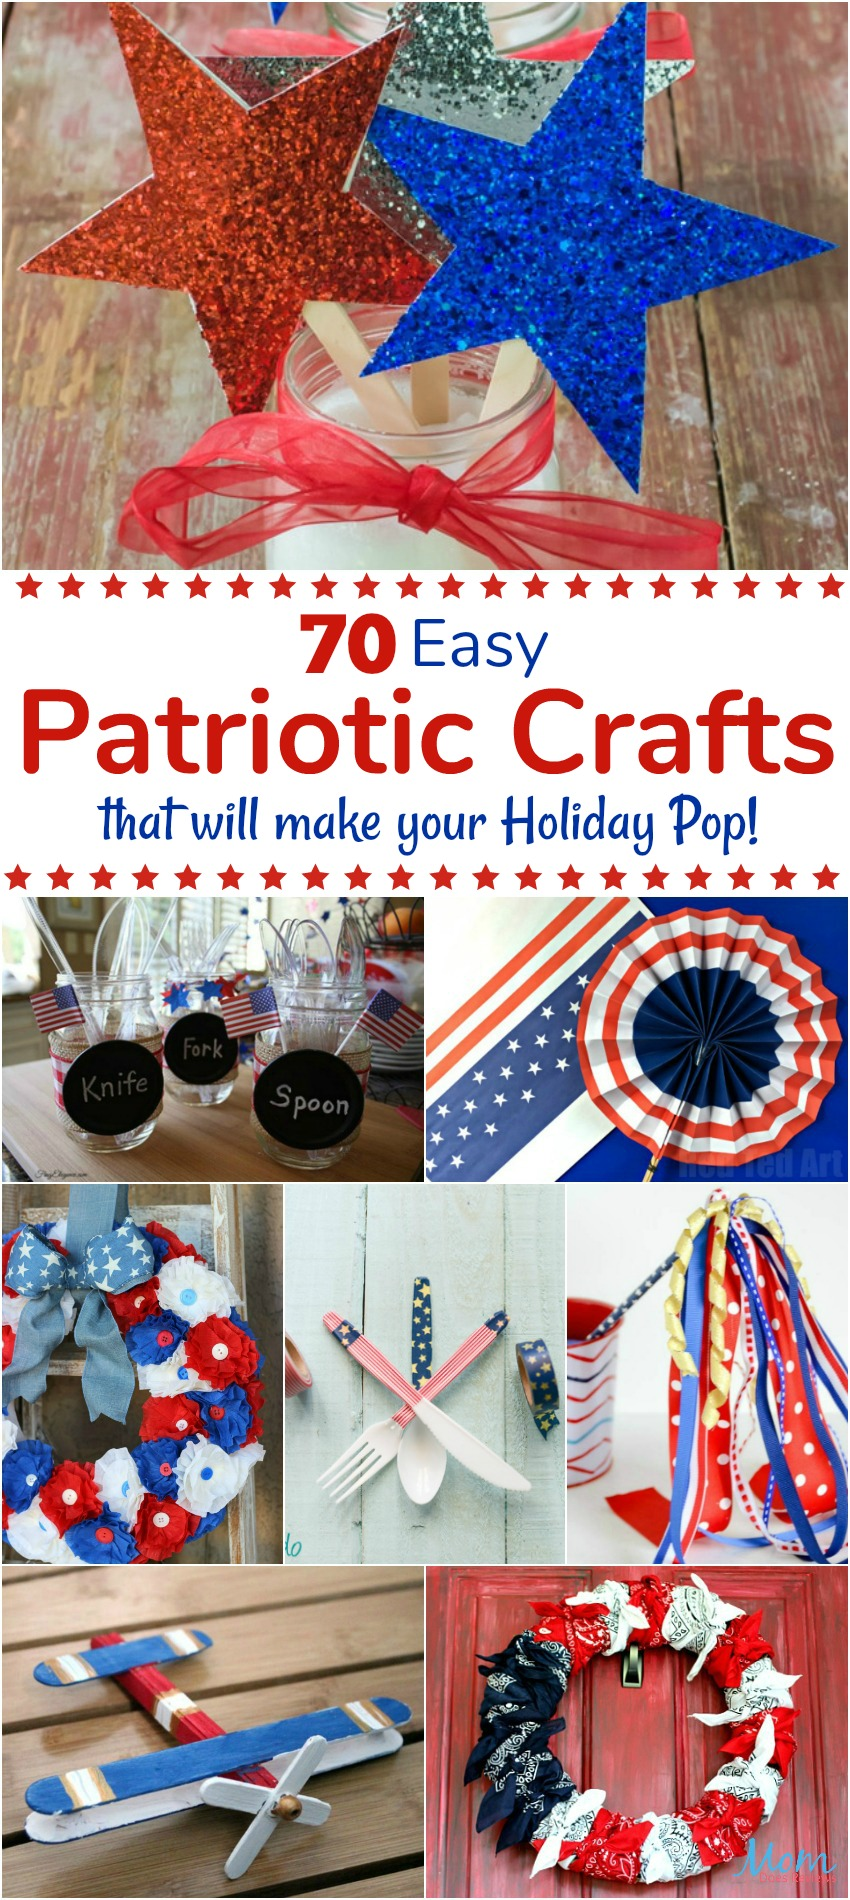 70 easy patriotic crafts that will make your holiday pop for Americana crafts to make